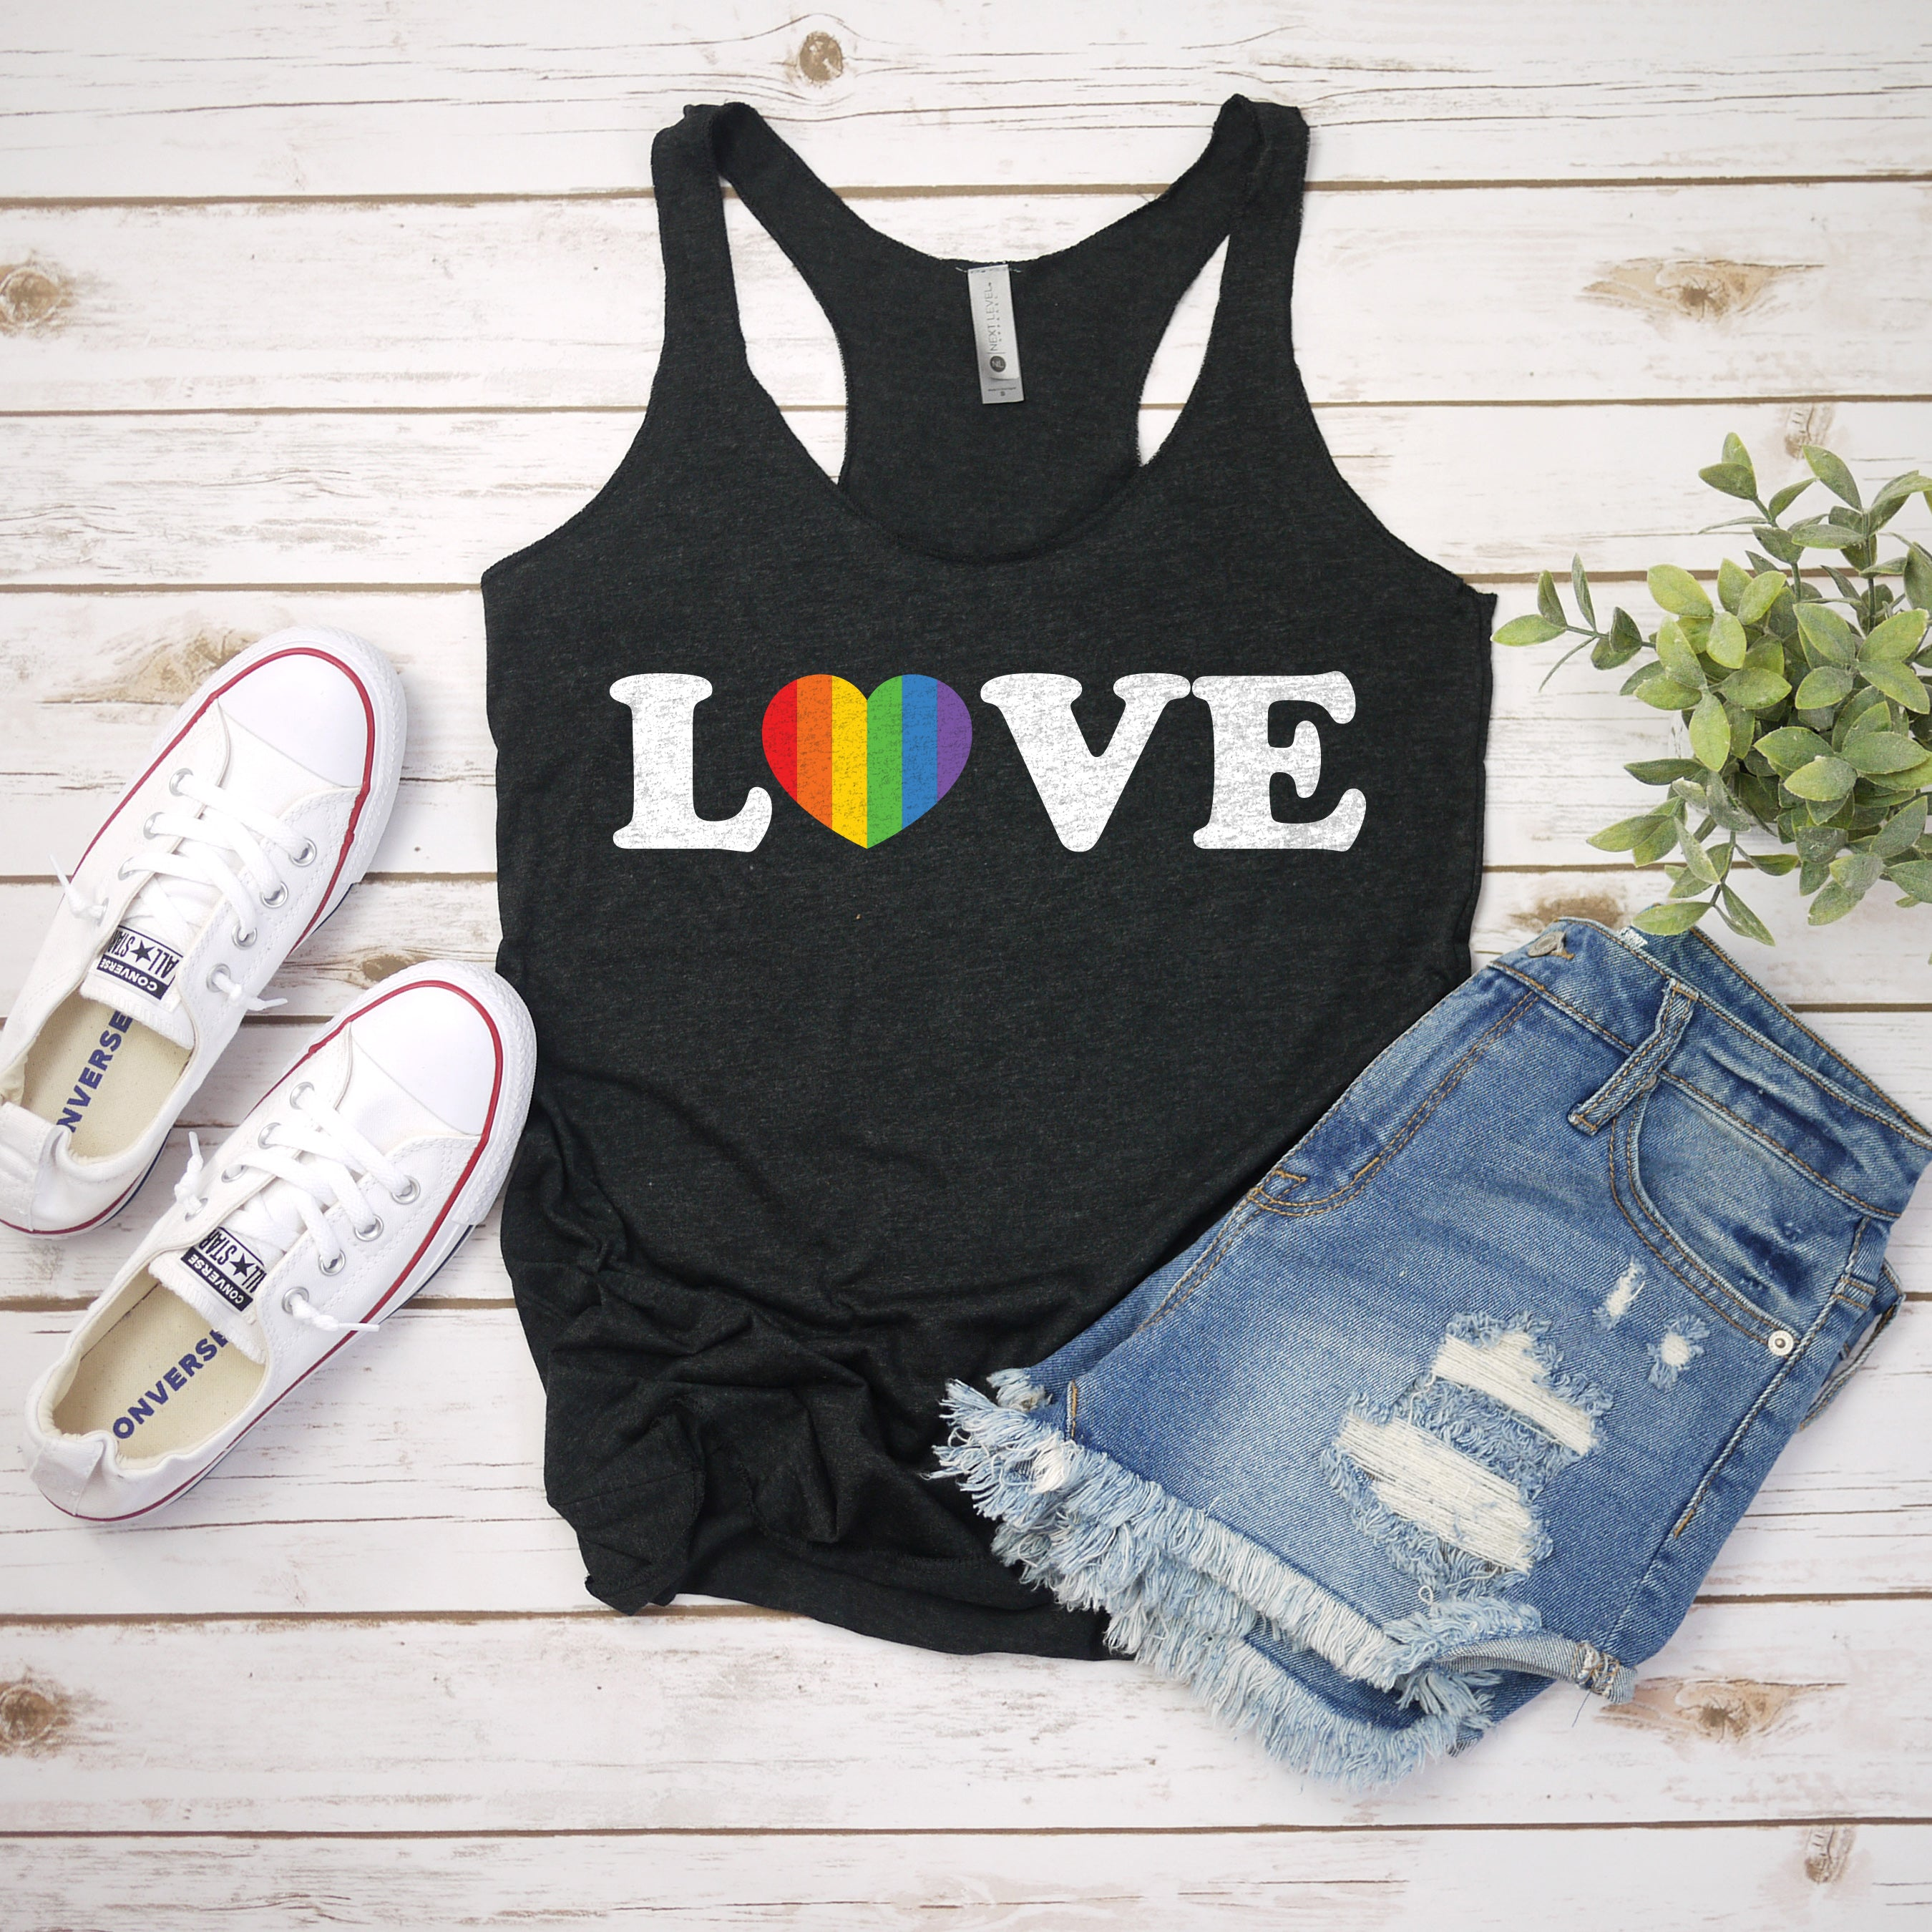 Love Rainbow Heart Pride Tank Top Pride Shirts for Women Cute Pride Outfit Gay Pride LGBT LGBTQ Shirts for Pride Parade